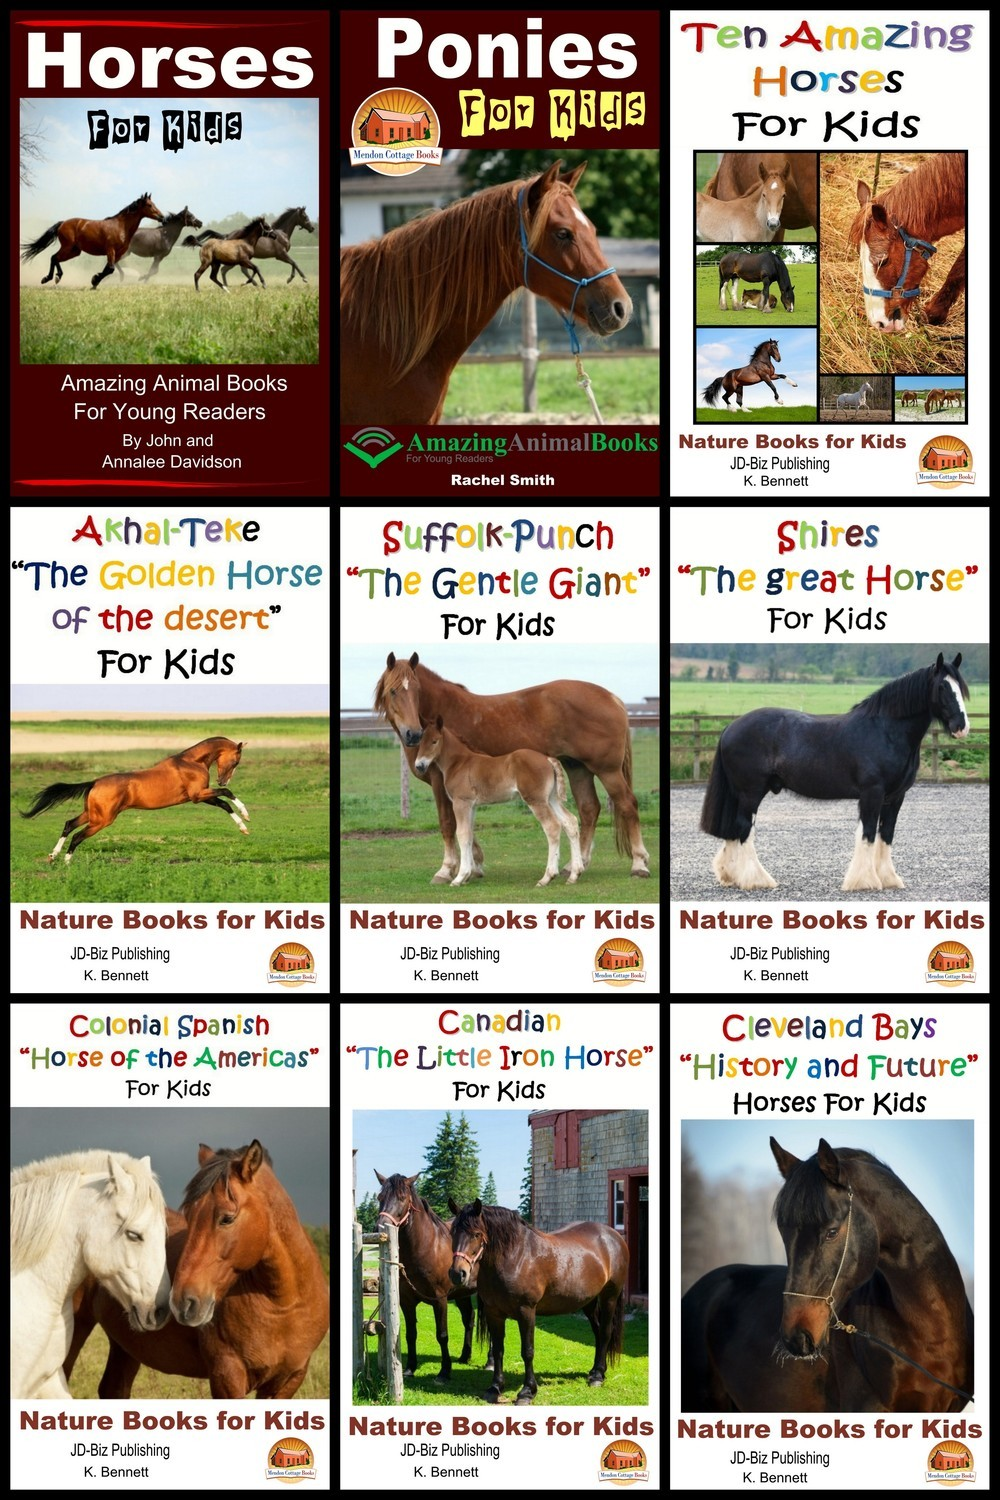 10 Horse Books for Kids